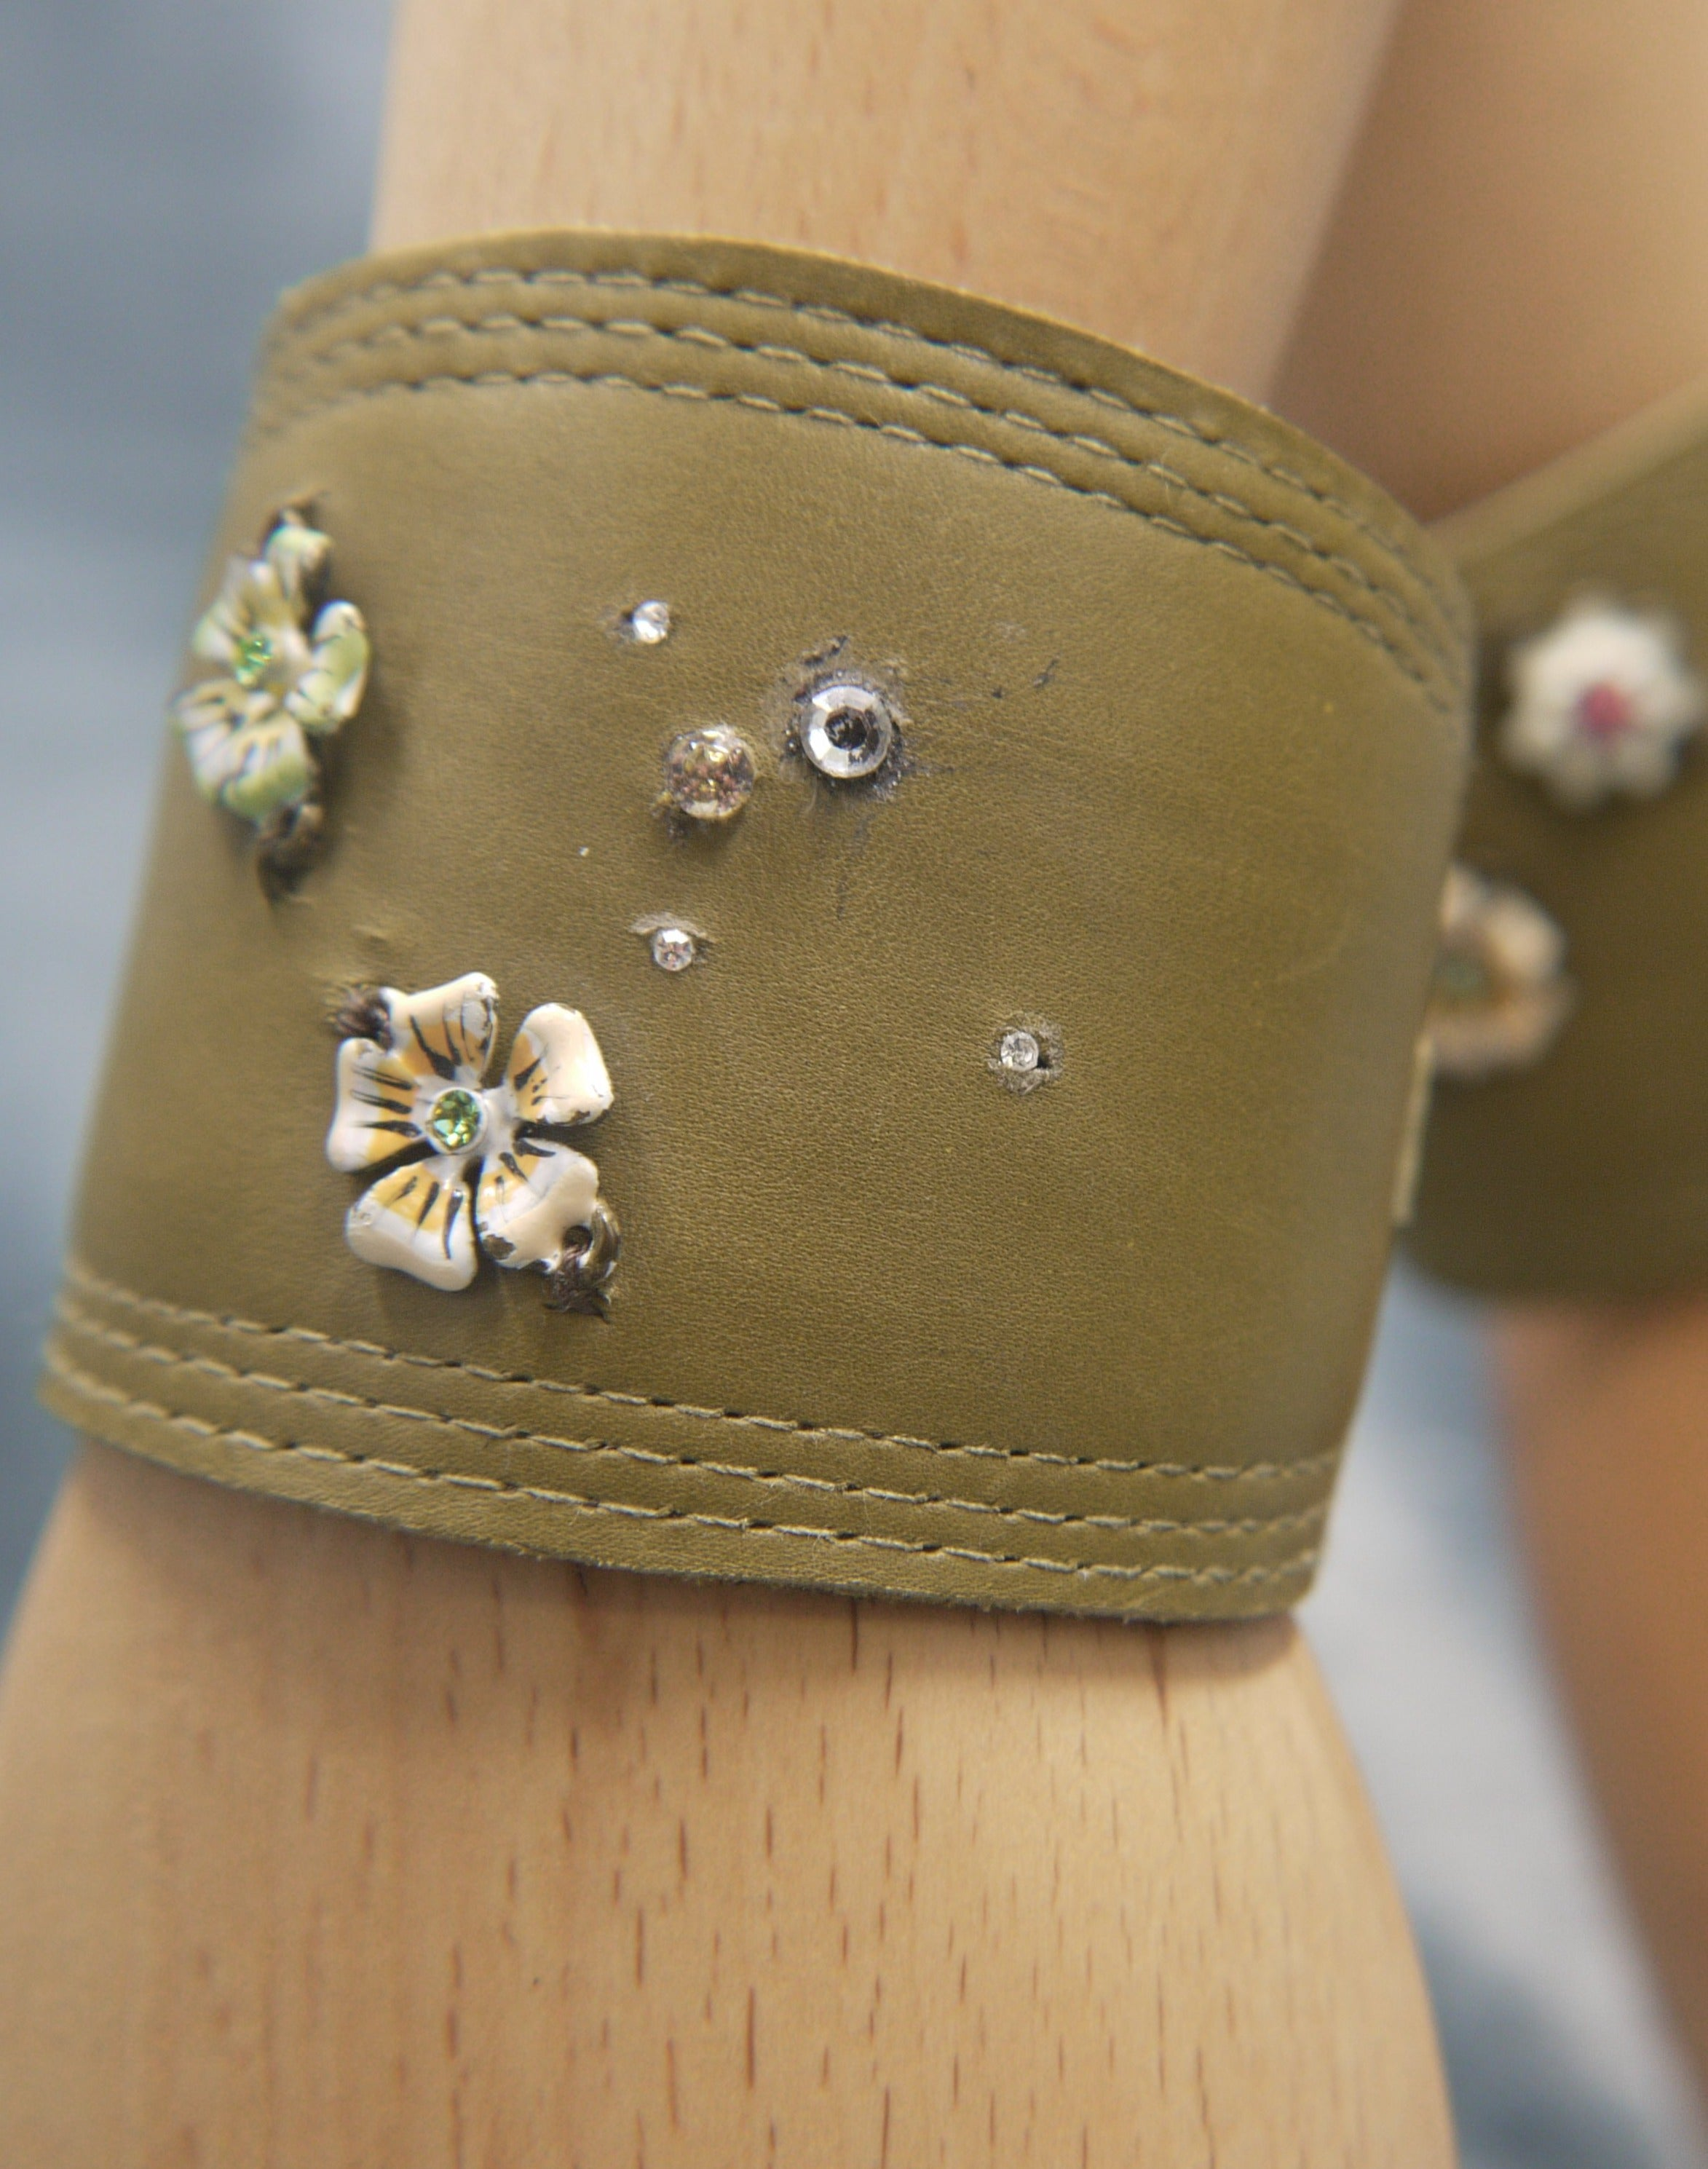 Leather Cuff in Olive Green with Enamelled Metal Floral elements